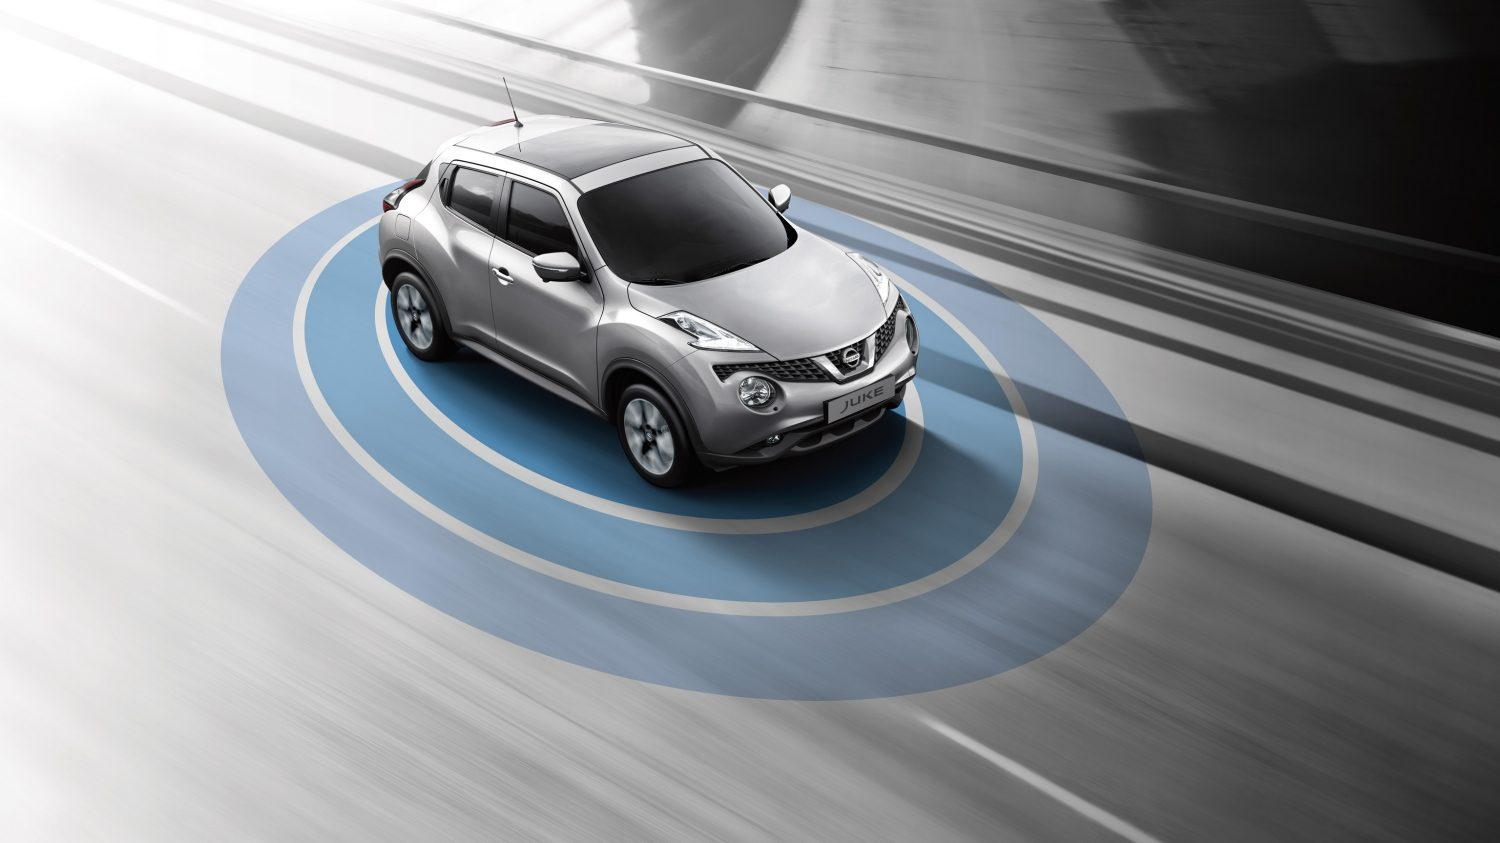 Compact & mini SUV features - Small SUV exterior | Nissan Juke